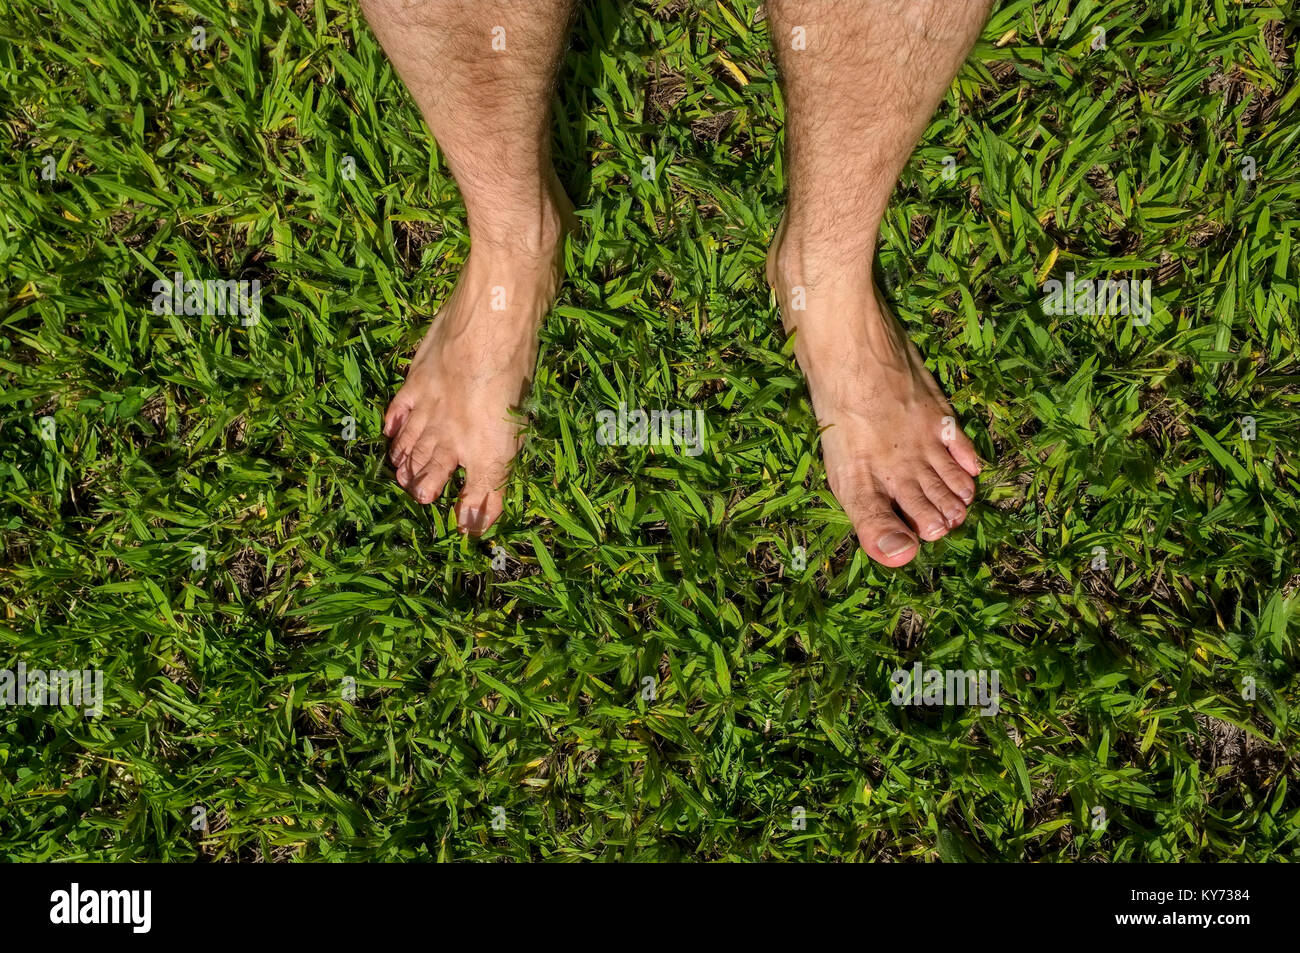 Barefoot in the grass - Stock Image